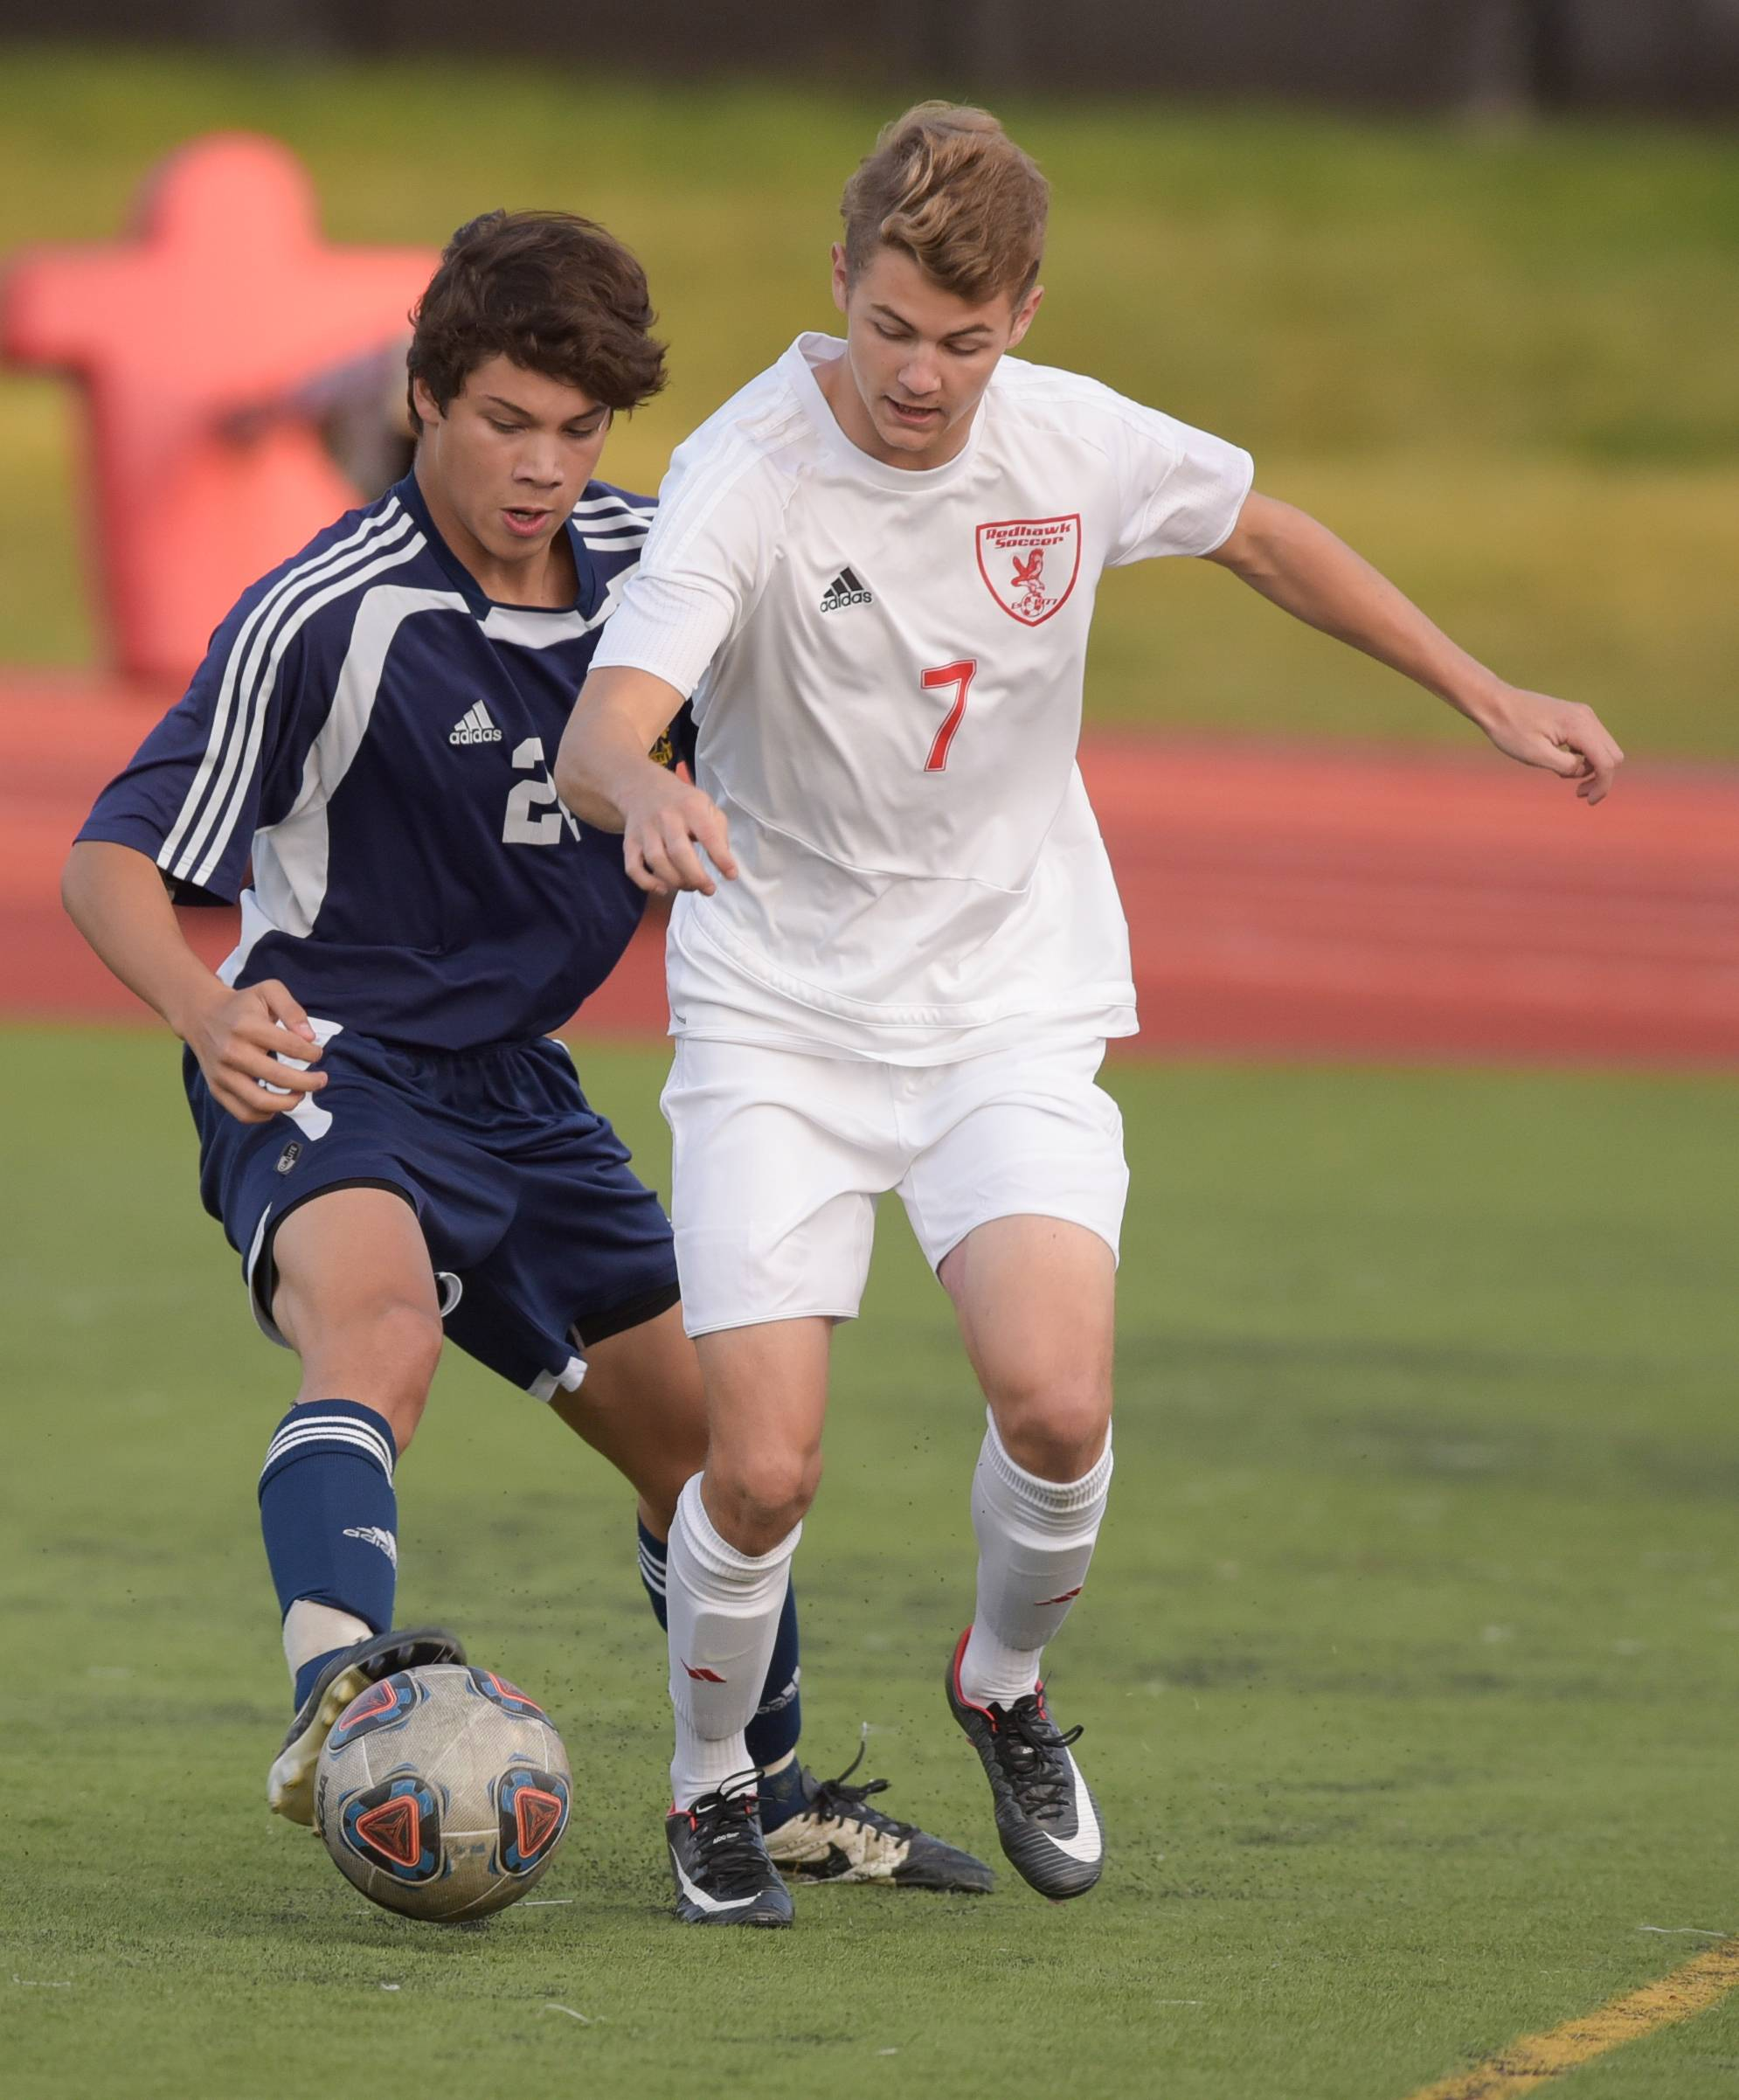 Neuqua Valley's Jose Navarro (21) chase down Naperville Central's Ryan Coleman (7) during varsity boys soccer in Naperville on September 12, 2017.